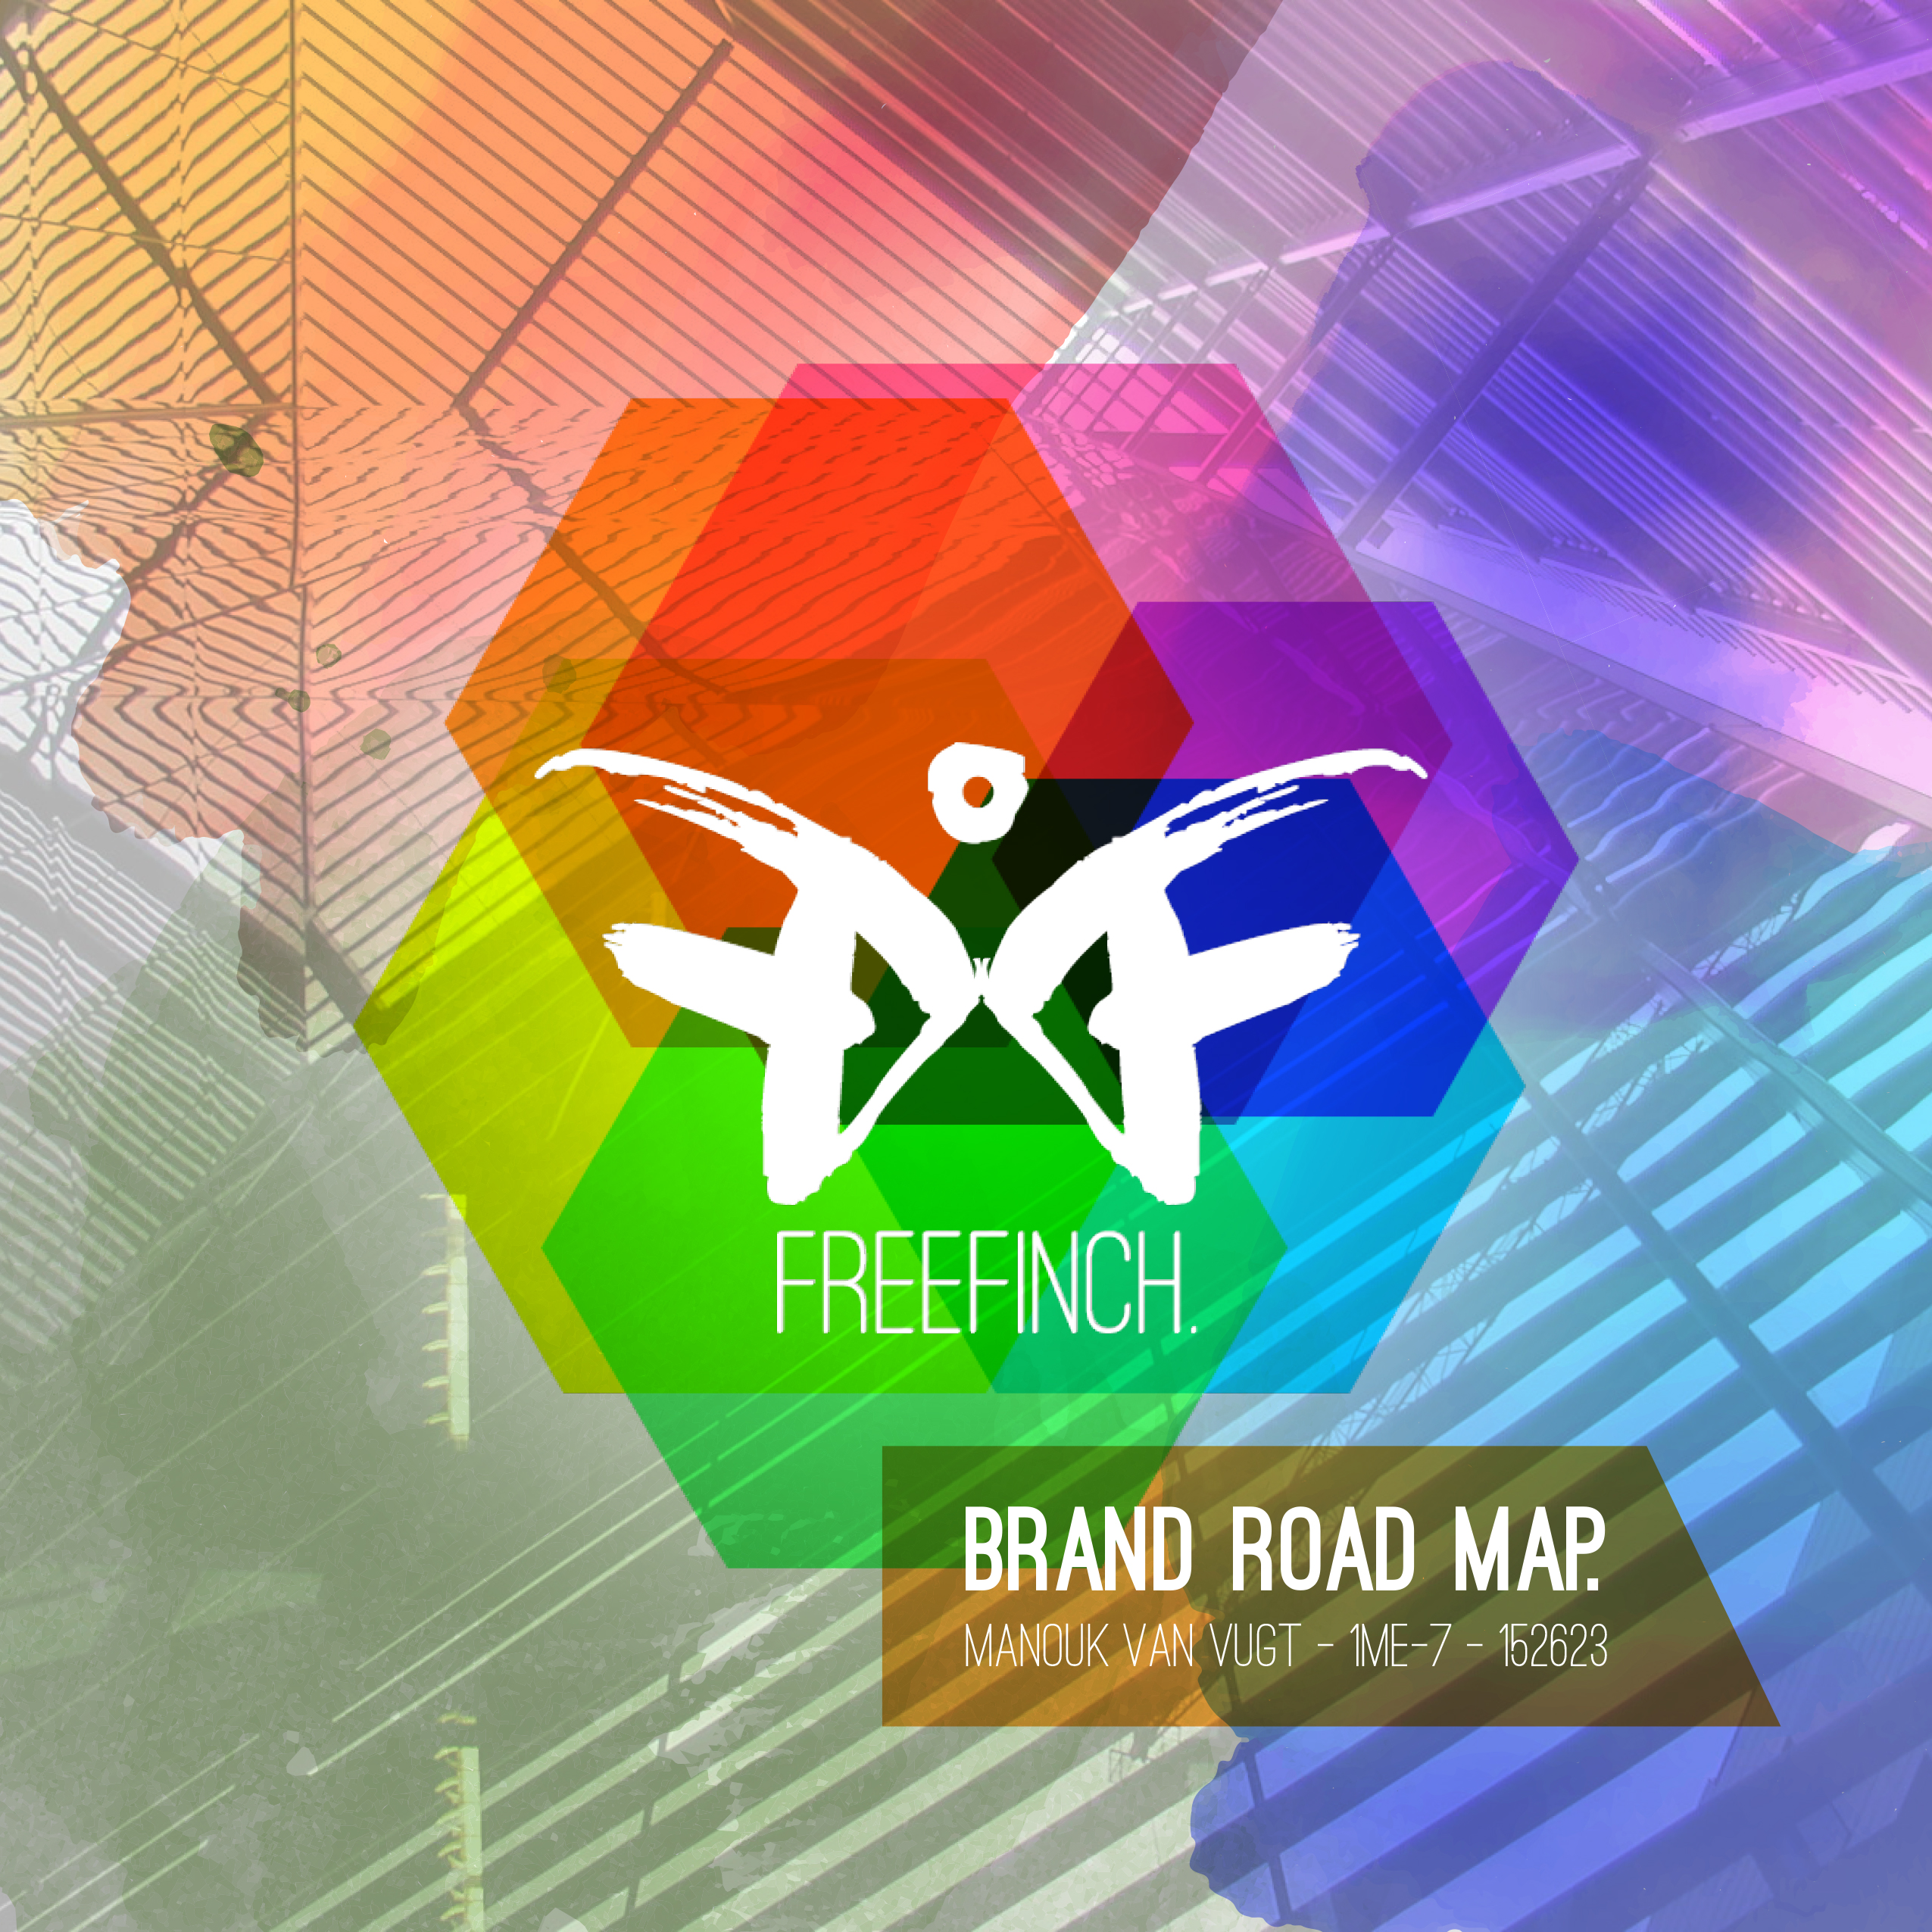 Brand-Road-Map-1